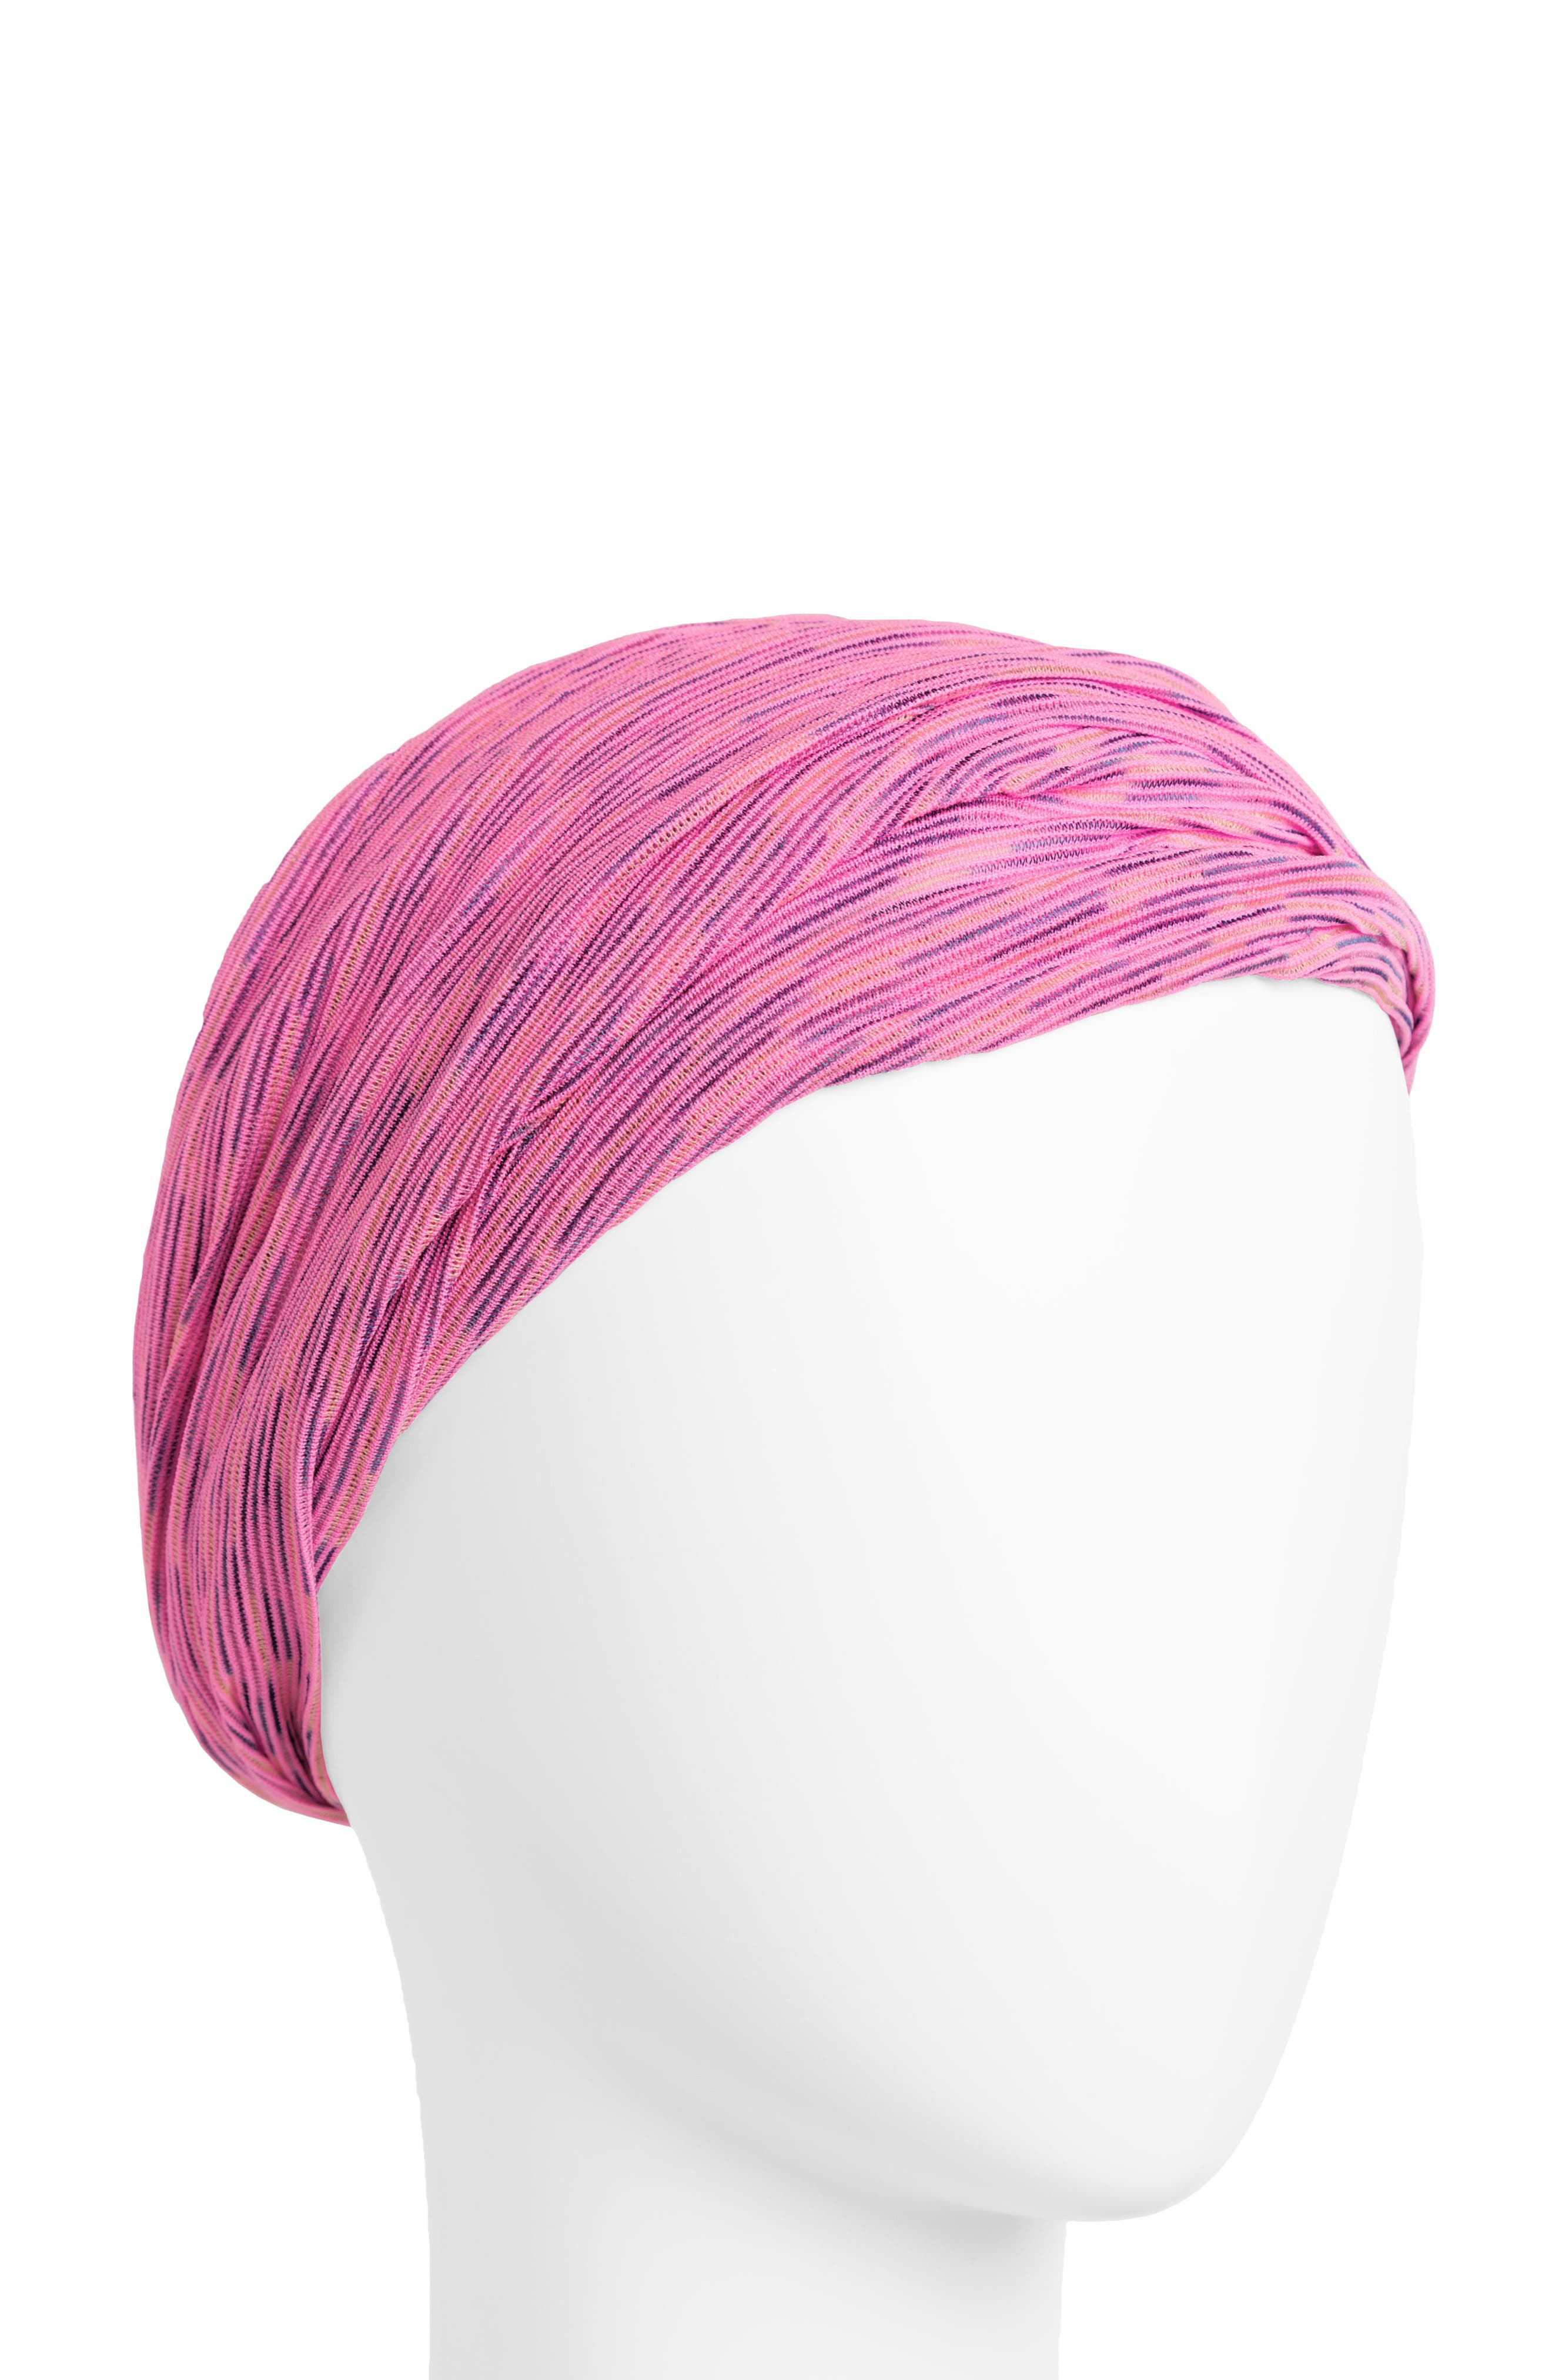 Space Dye Relaxed Turban Head Wrap,                         Main,                         color, PINK